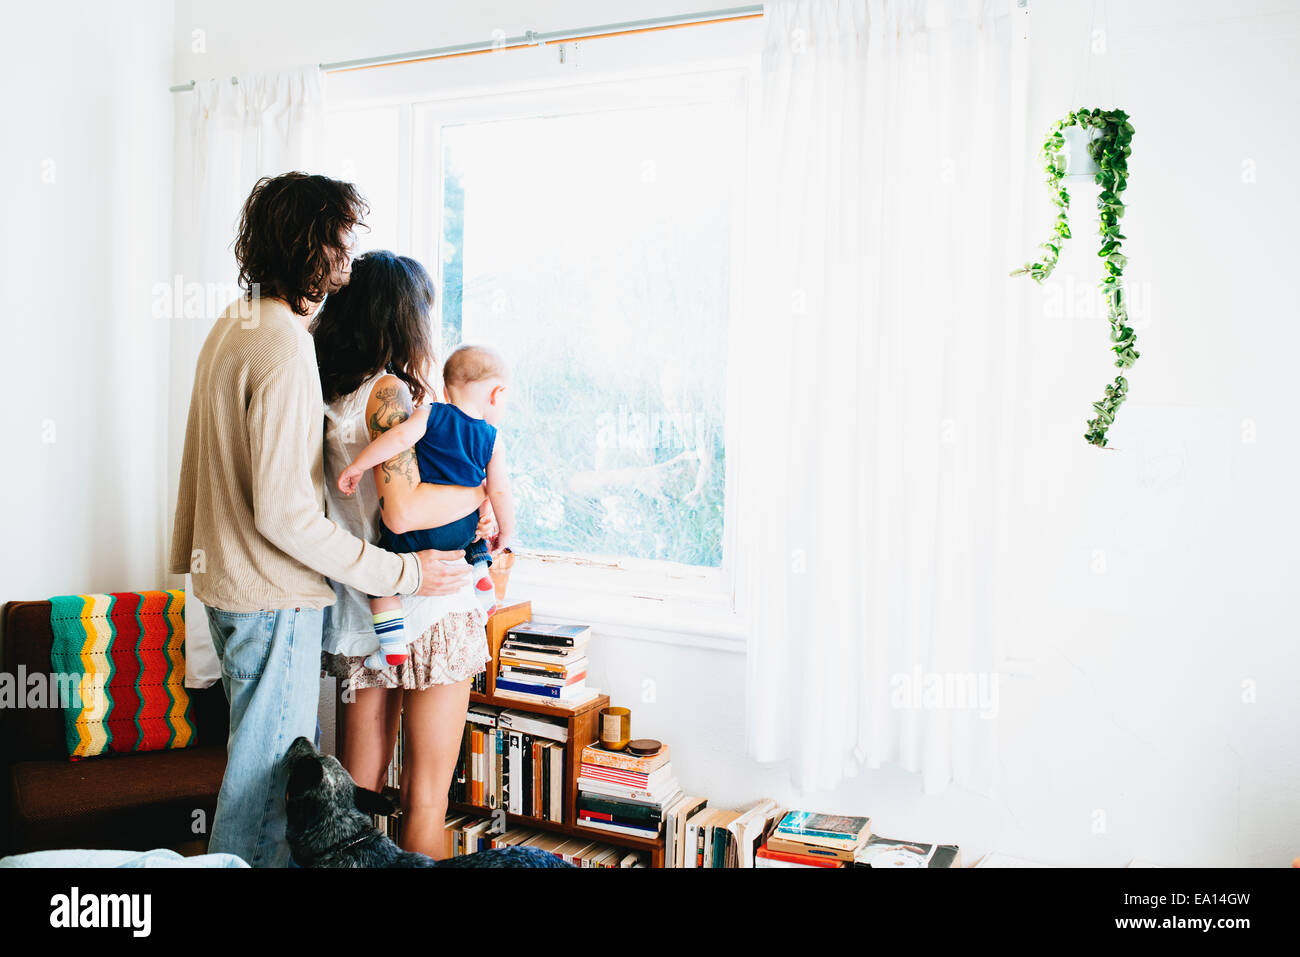 Family looking out of window - Stock Image